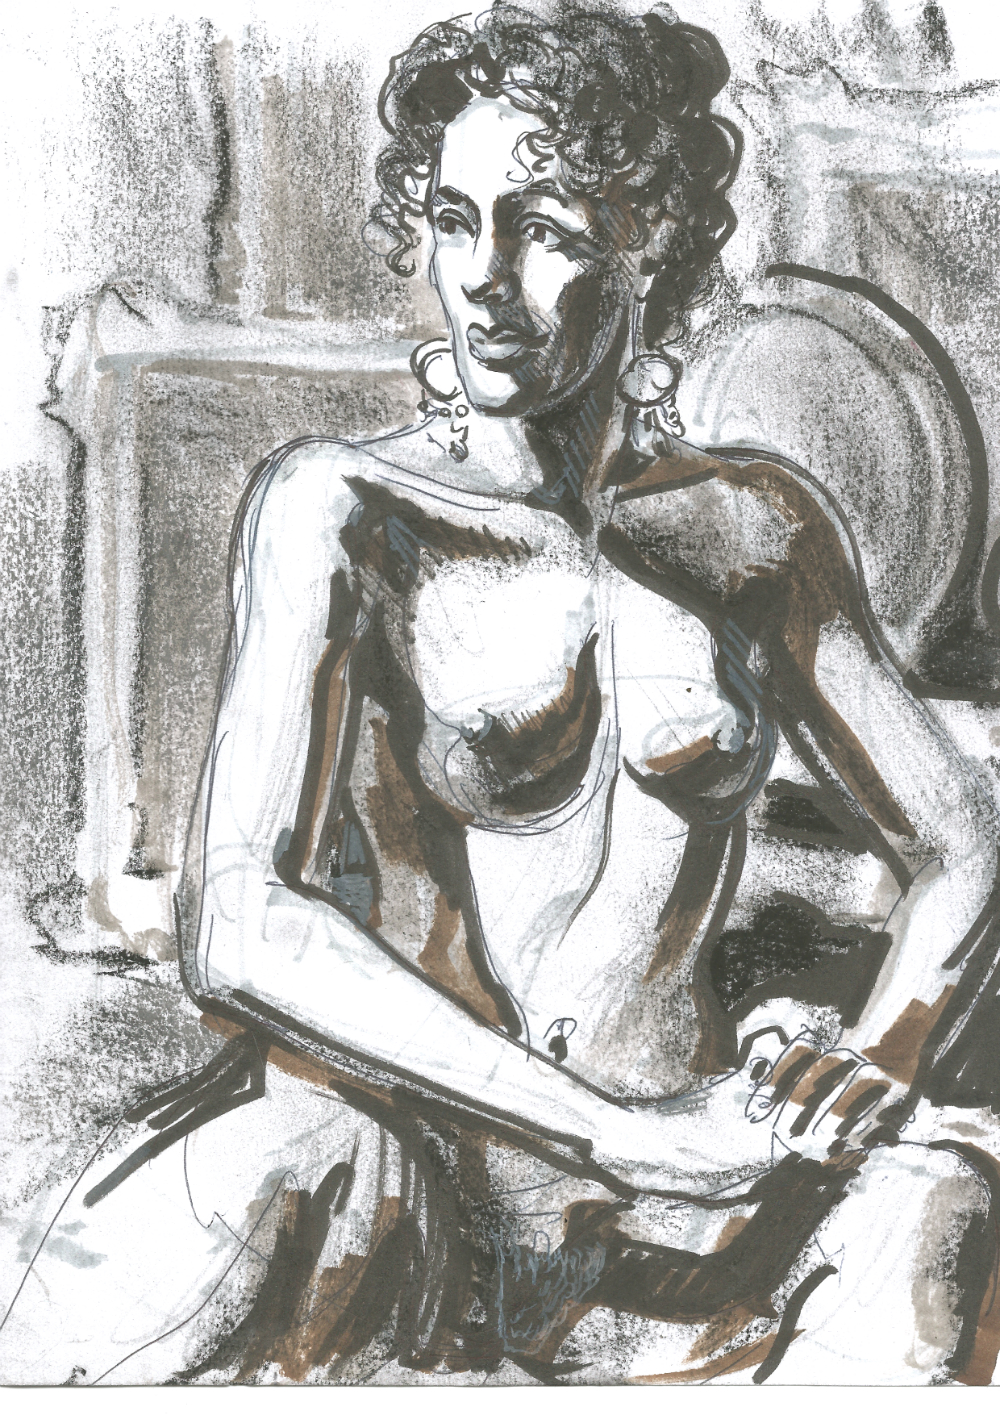 Liliana Velasquez seated at Dr Sketchys Berlin Drink n Draw kunsthaus Nov 24 2019 by Suzanne Forbes